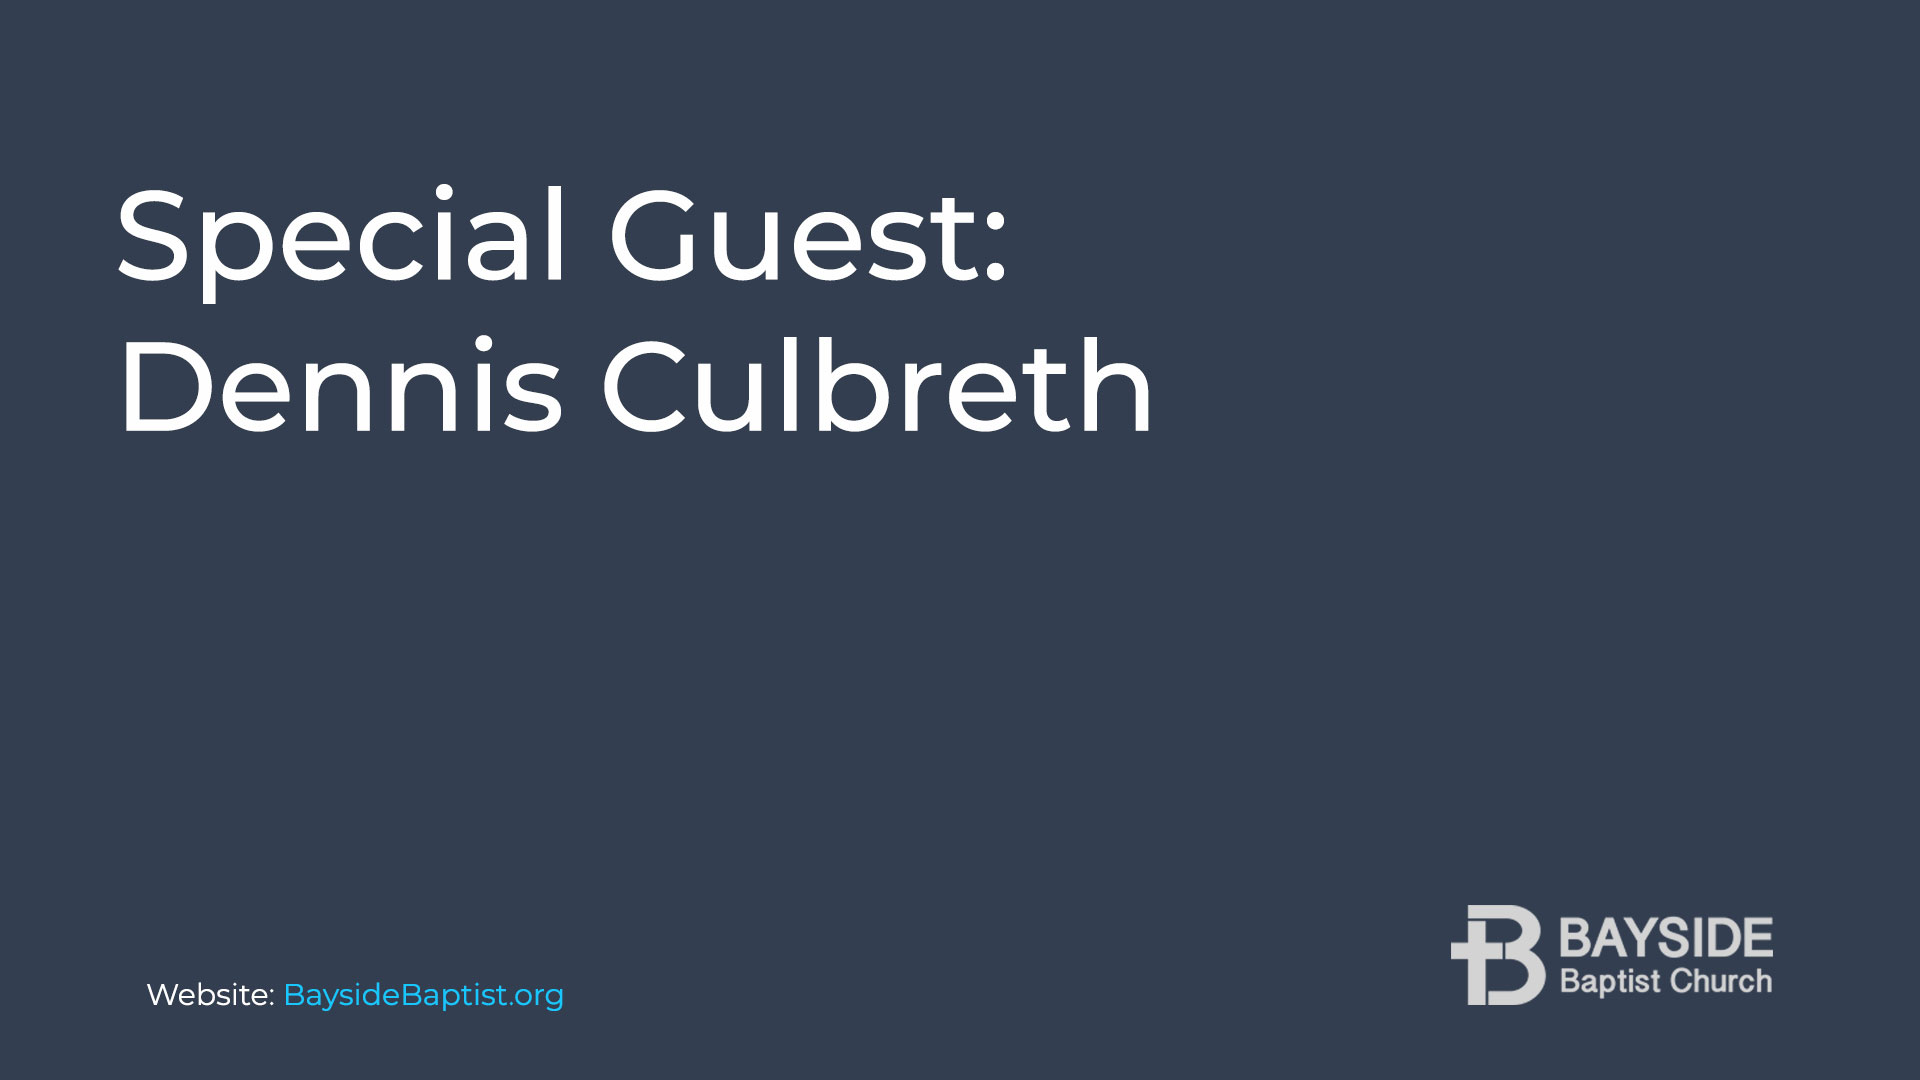 Special Guest: Dennis Culbreth Image